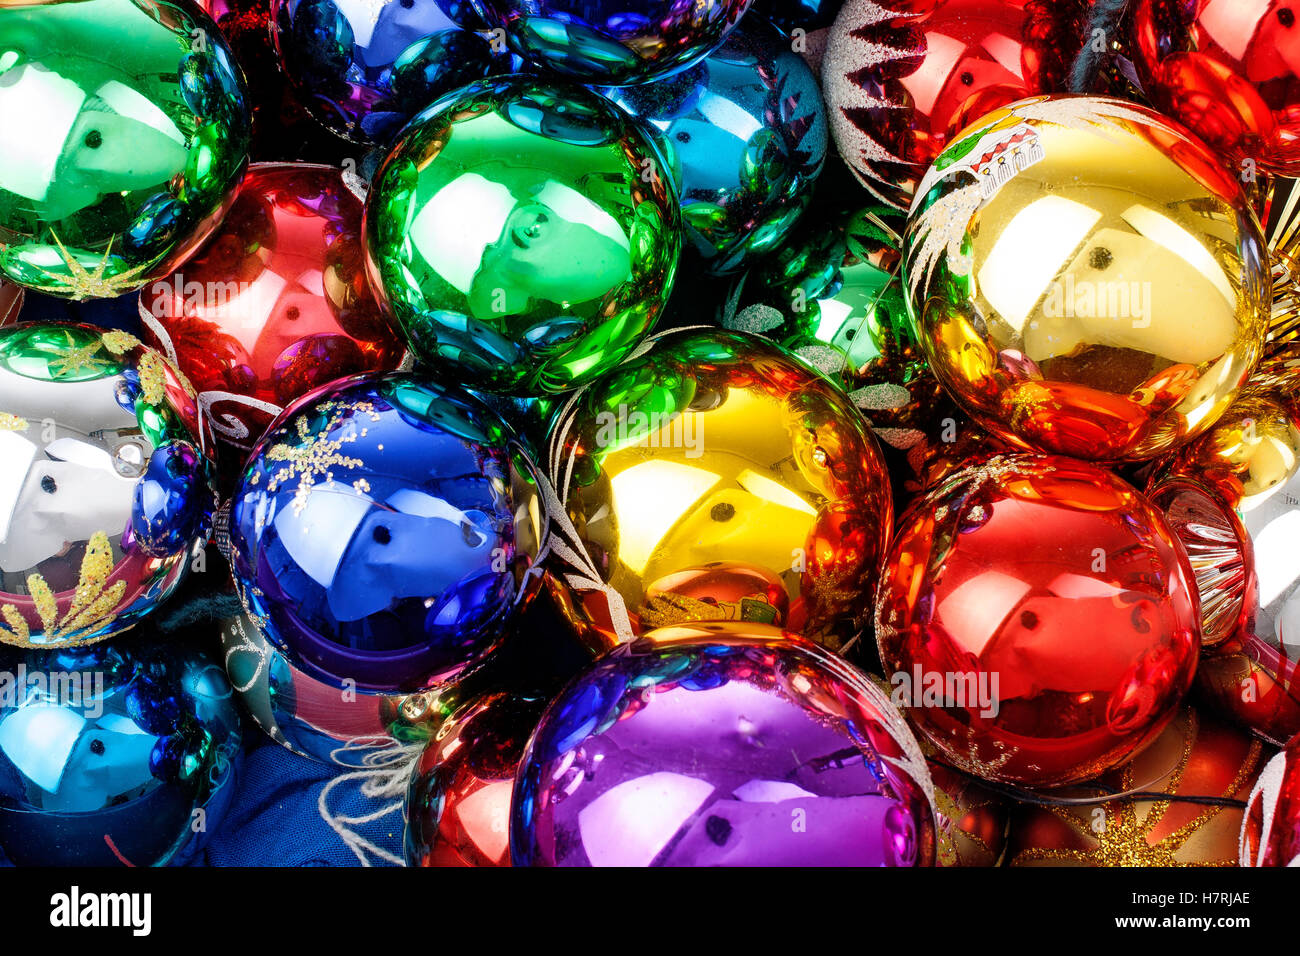 Christmas Ornaments Beautiful Shiny Real Glass Vintage Balls Colorful Eye Catching Brilliant Ball Texture Wallpaper Concept